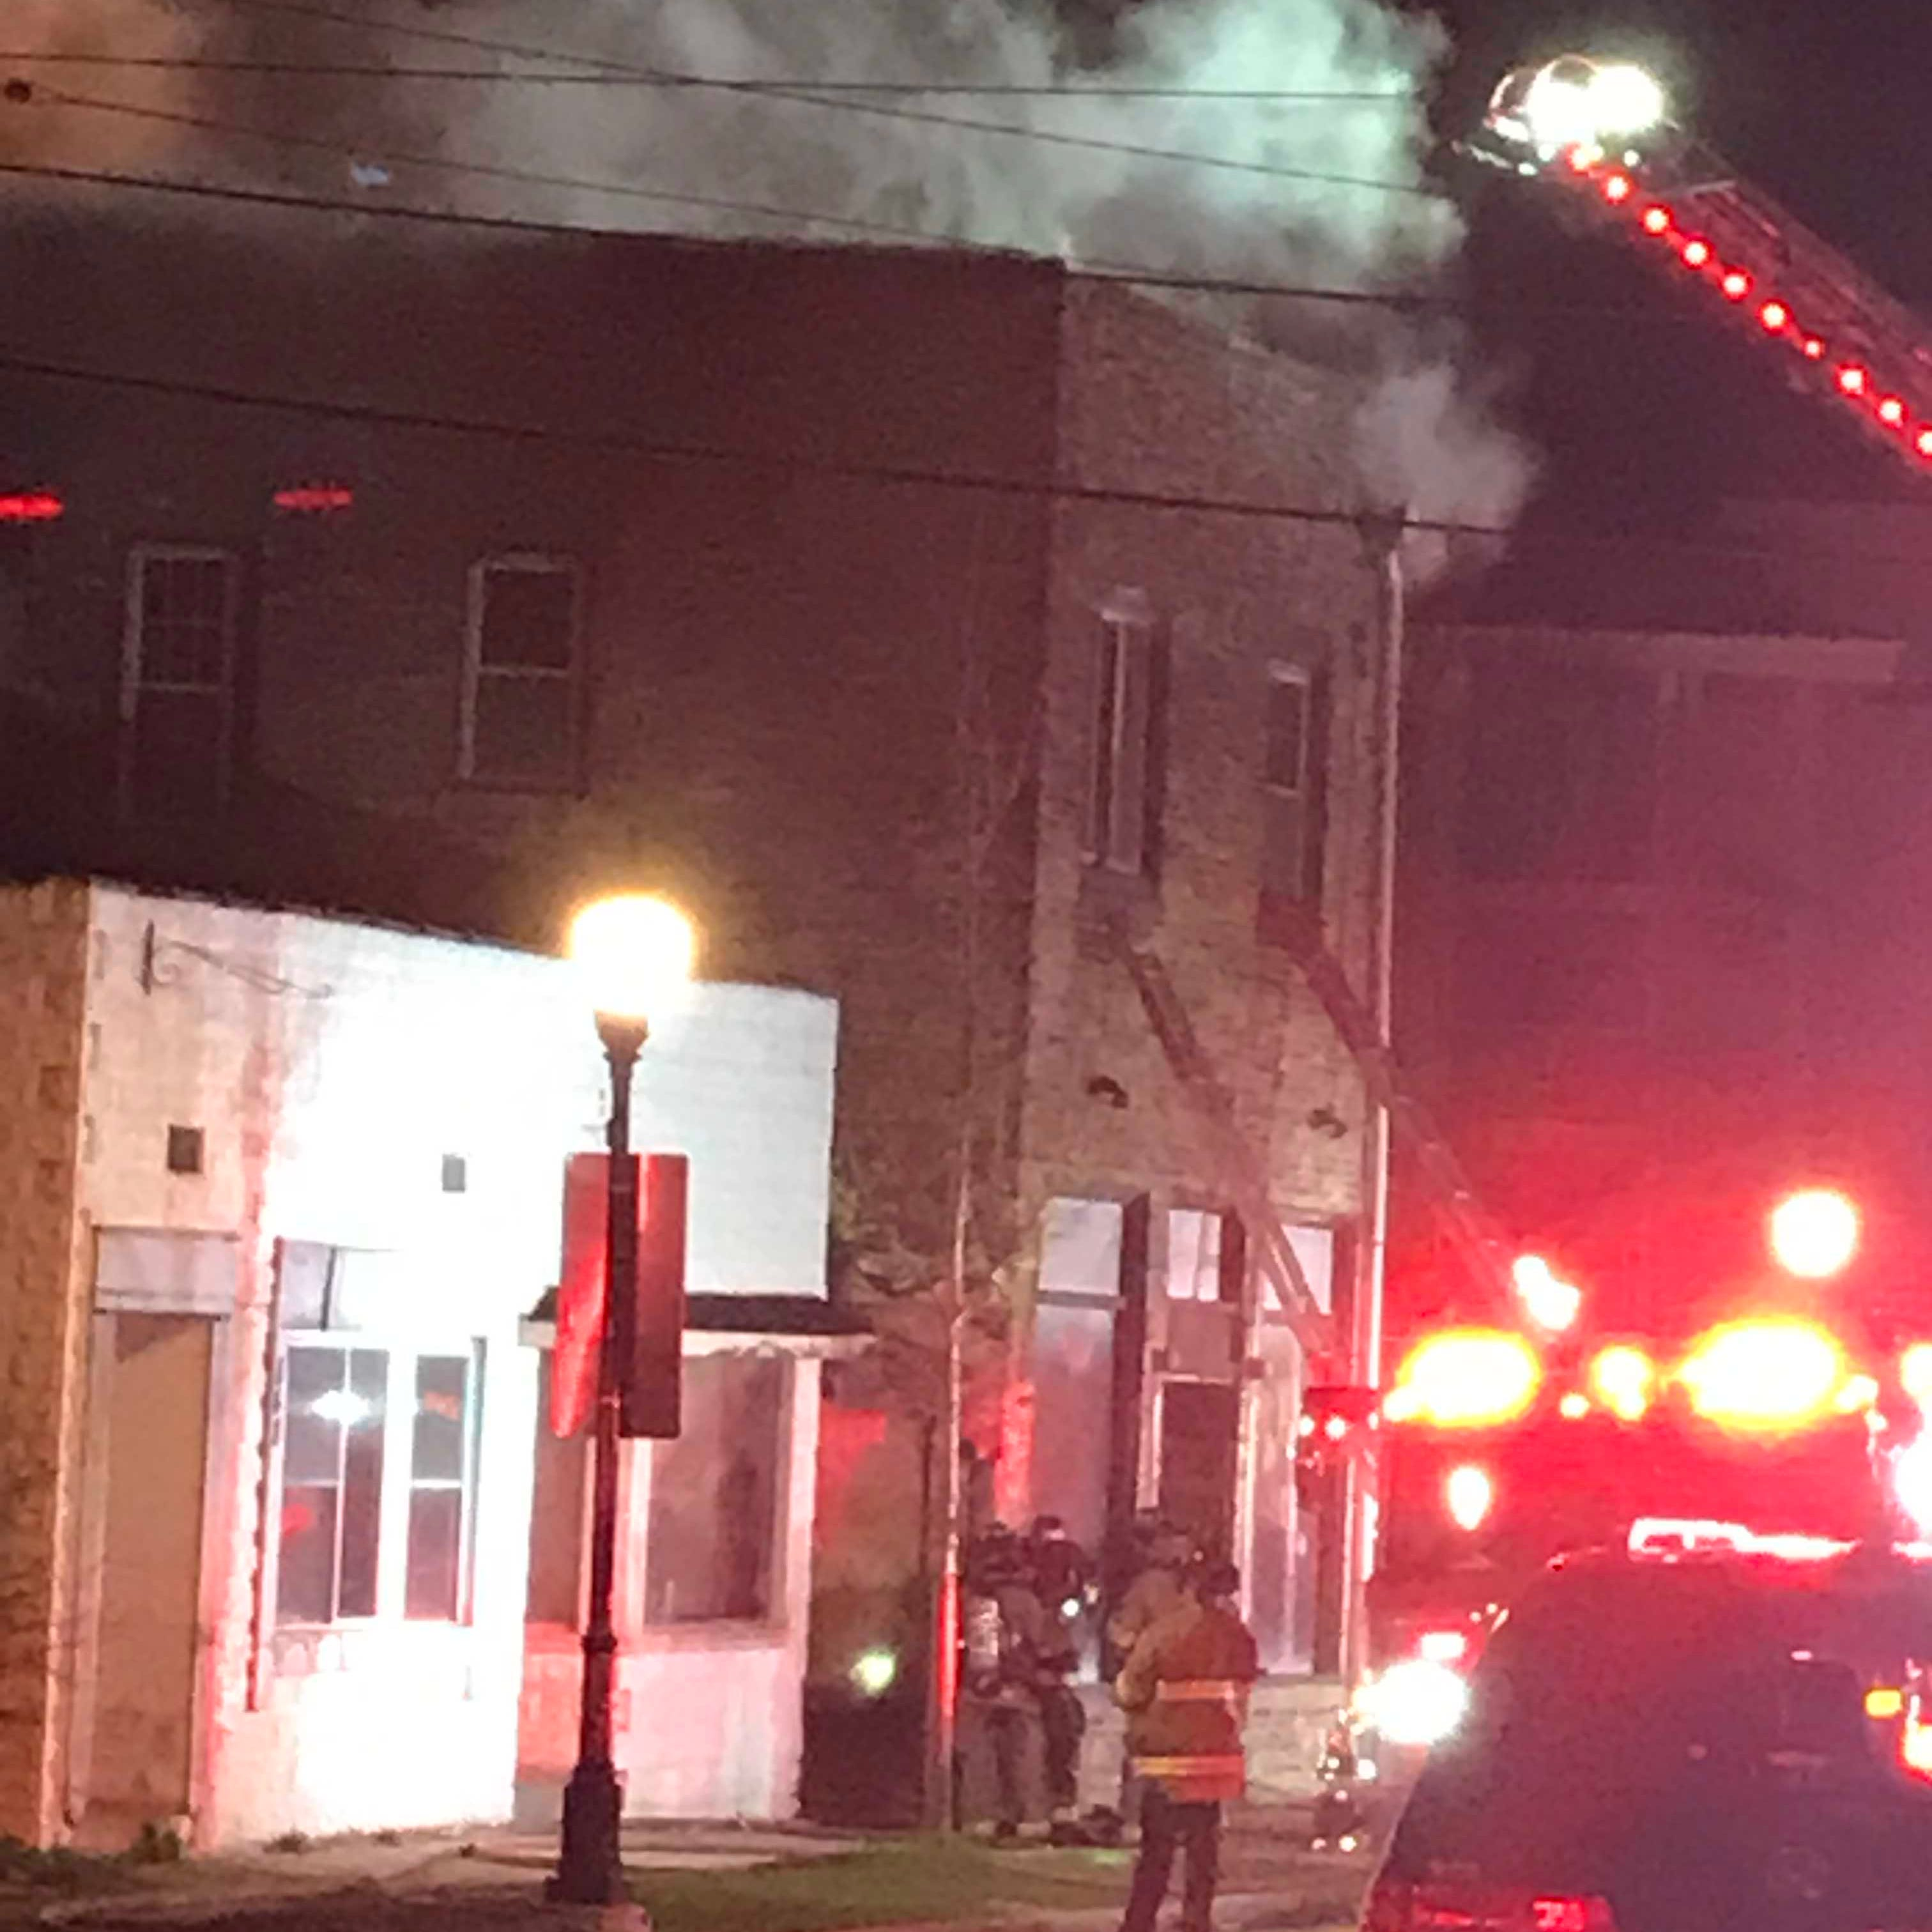 No injuries reported after a fire breaks out in a vacant building in downtown Waukesha